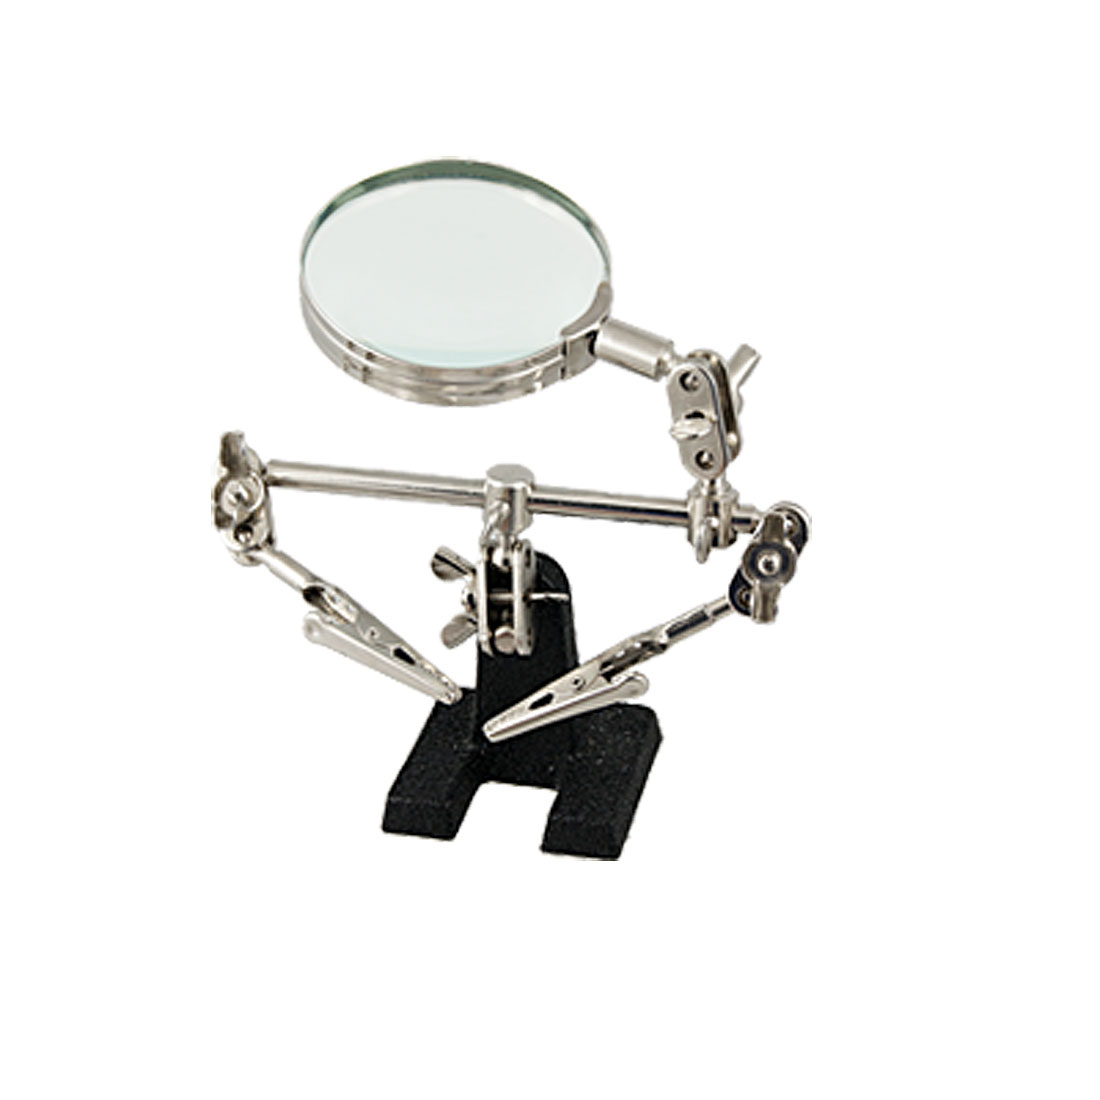 "Black Stand Rotary 2.5"" Lens Magnifying Glass w Alligator Clips"